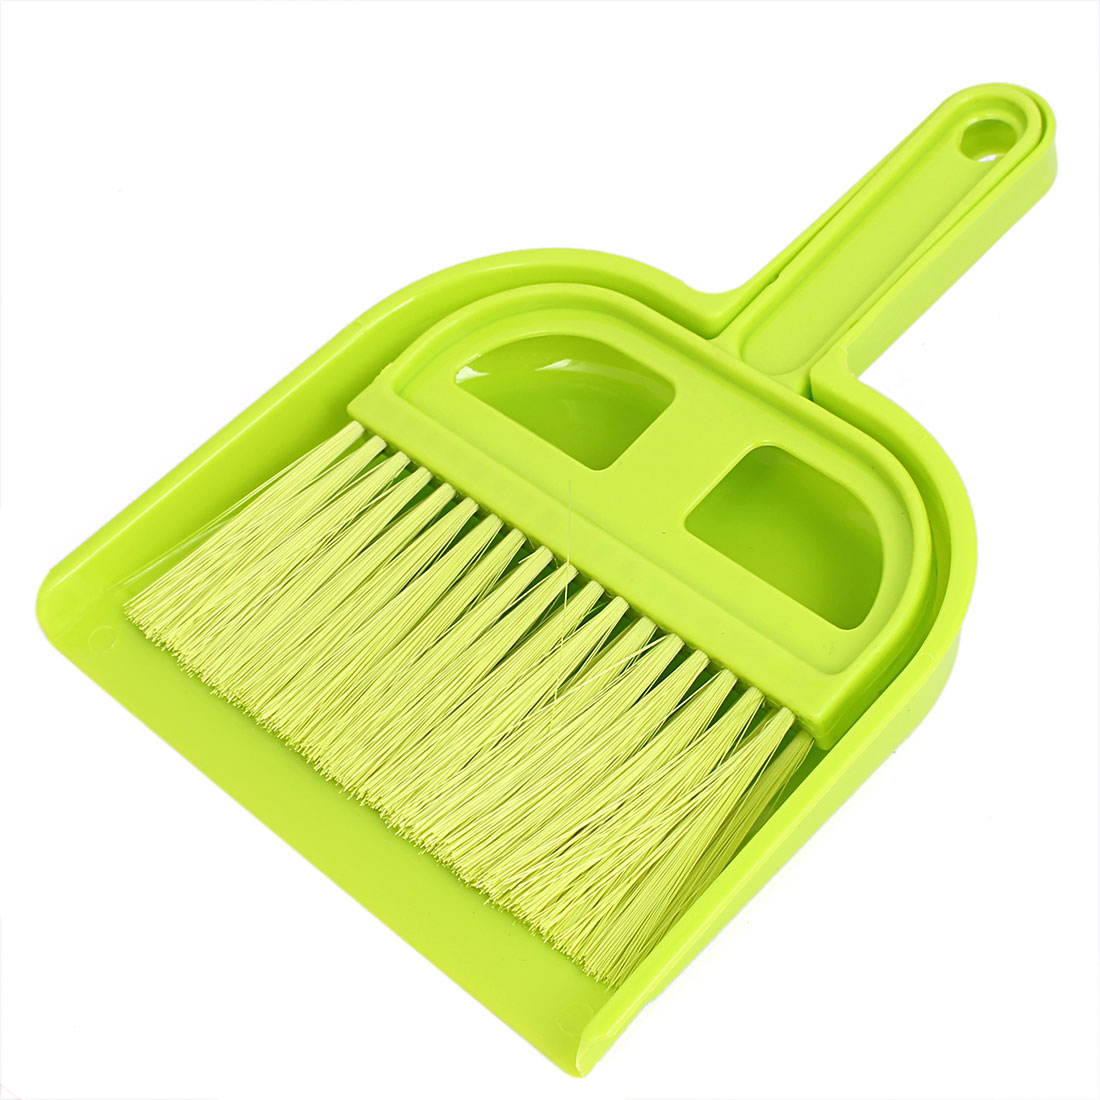 Car Dashboard Desktop Computer Keyboard Mini Cleaning Brush Dustpan Set Green